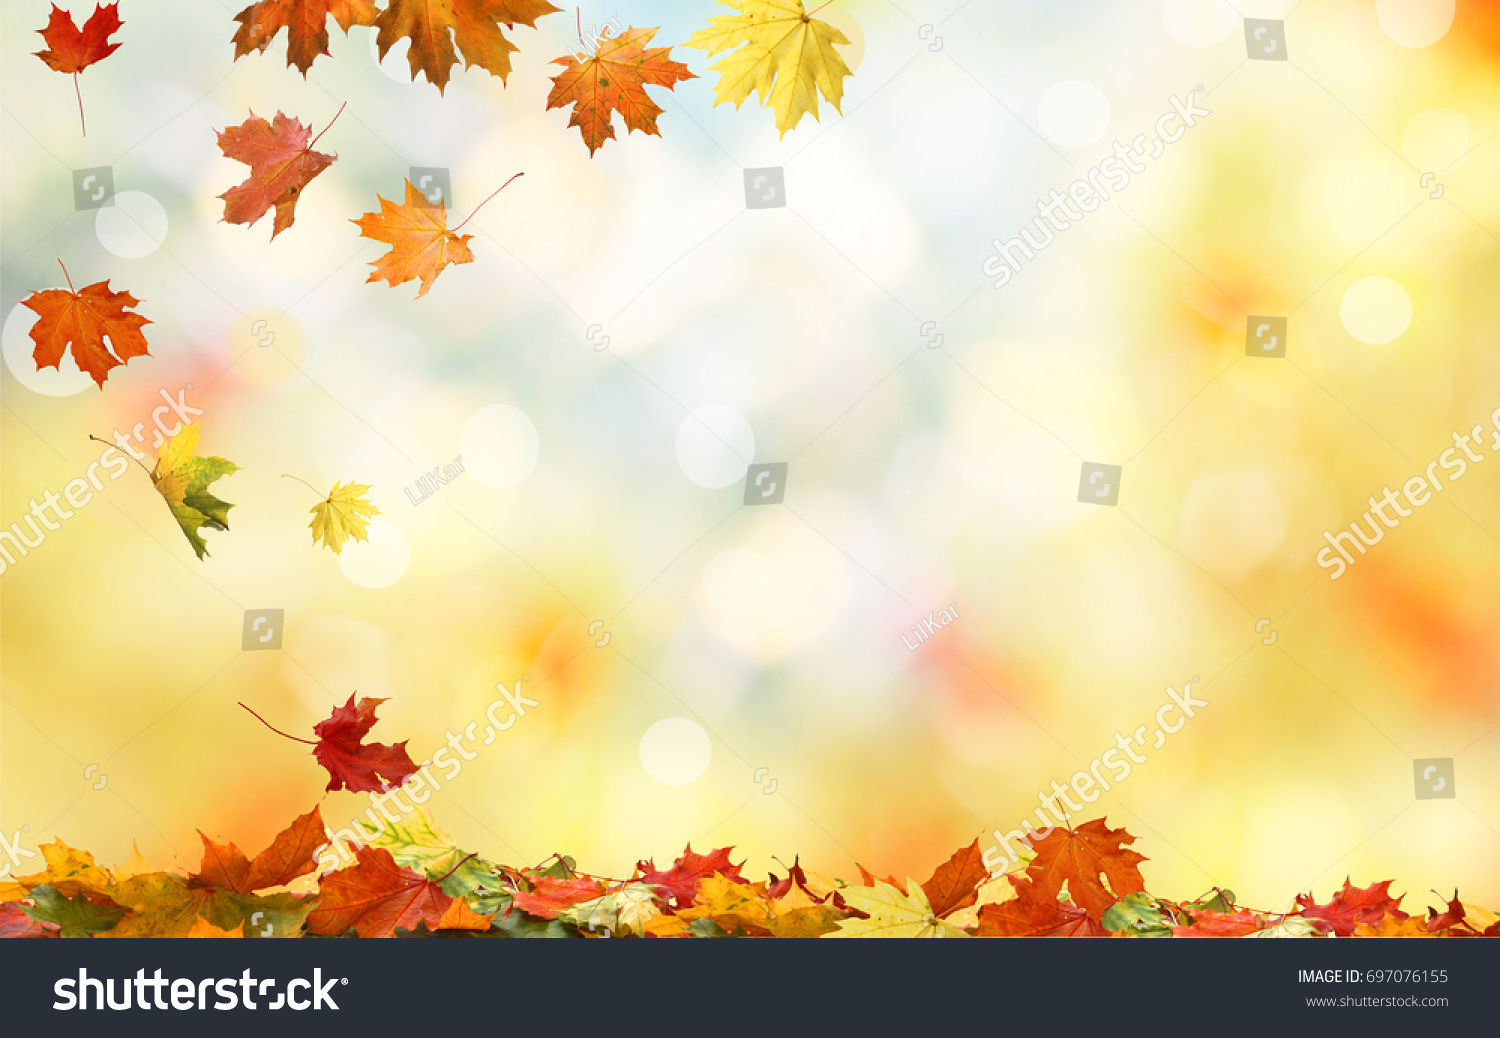 Falling autumn maple leaves natural background .Colorful foliage  #697076155